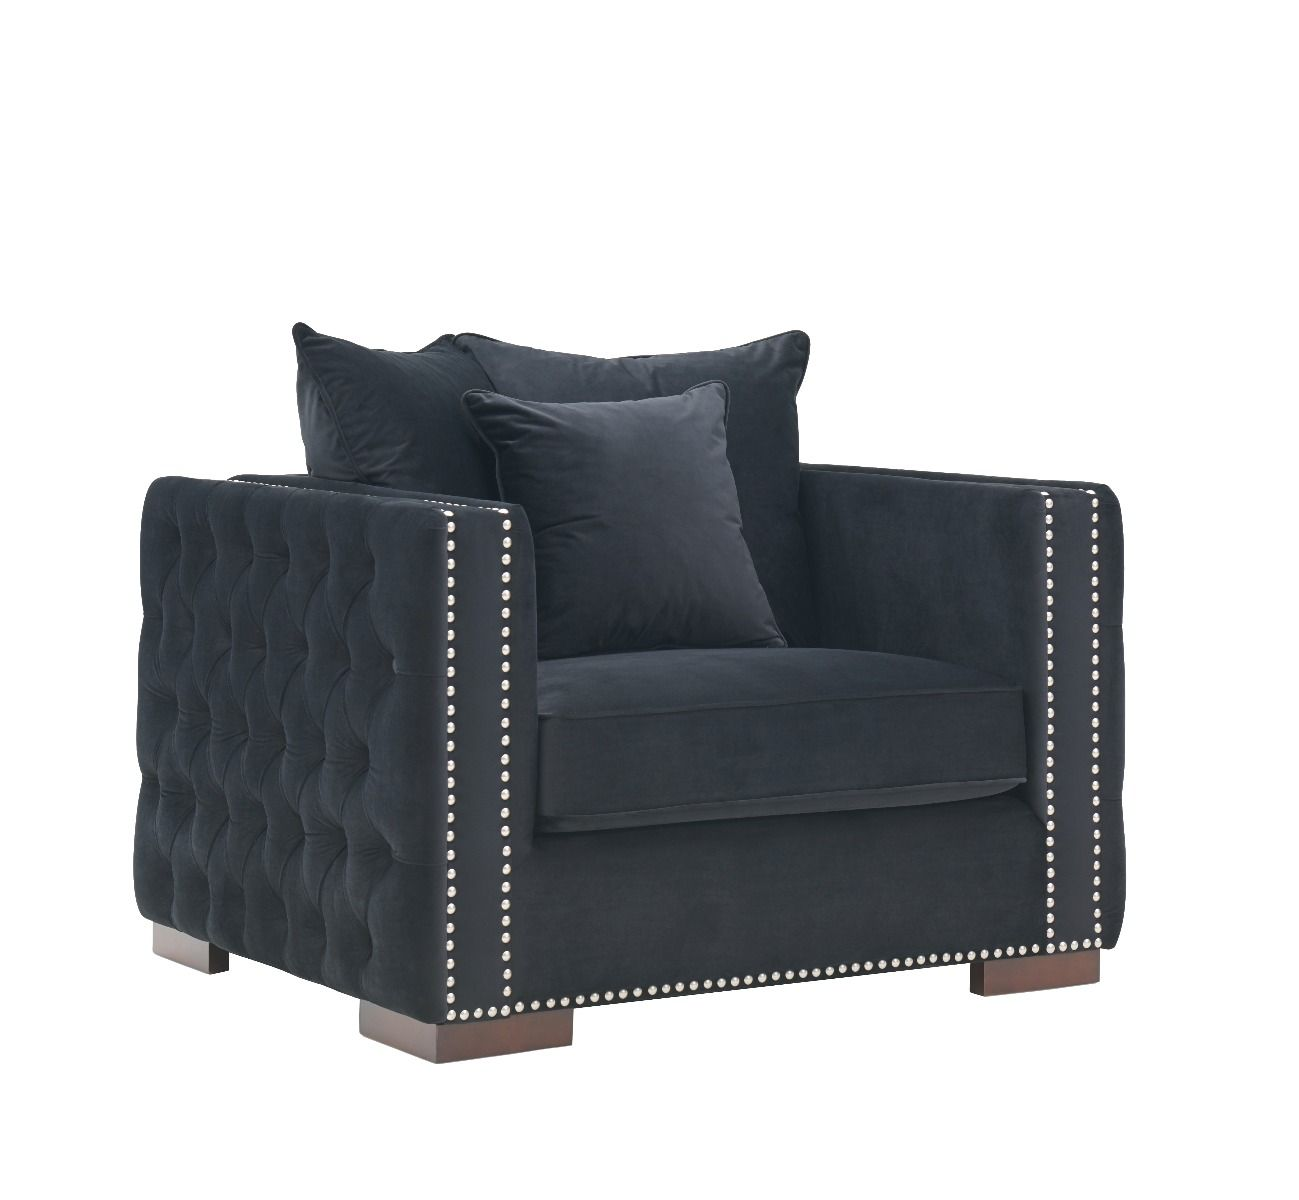 Moscow Chair - Black